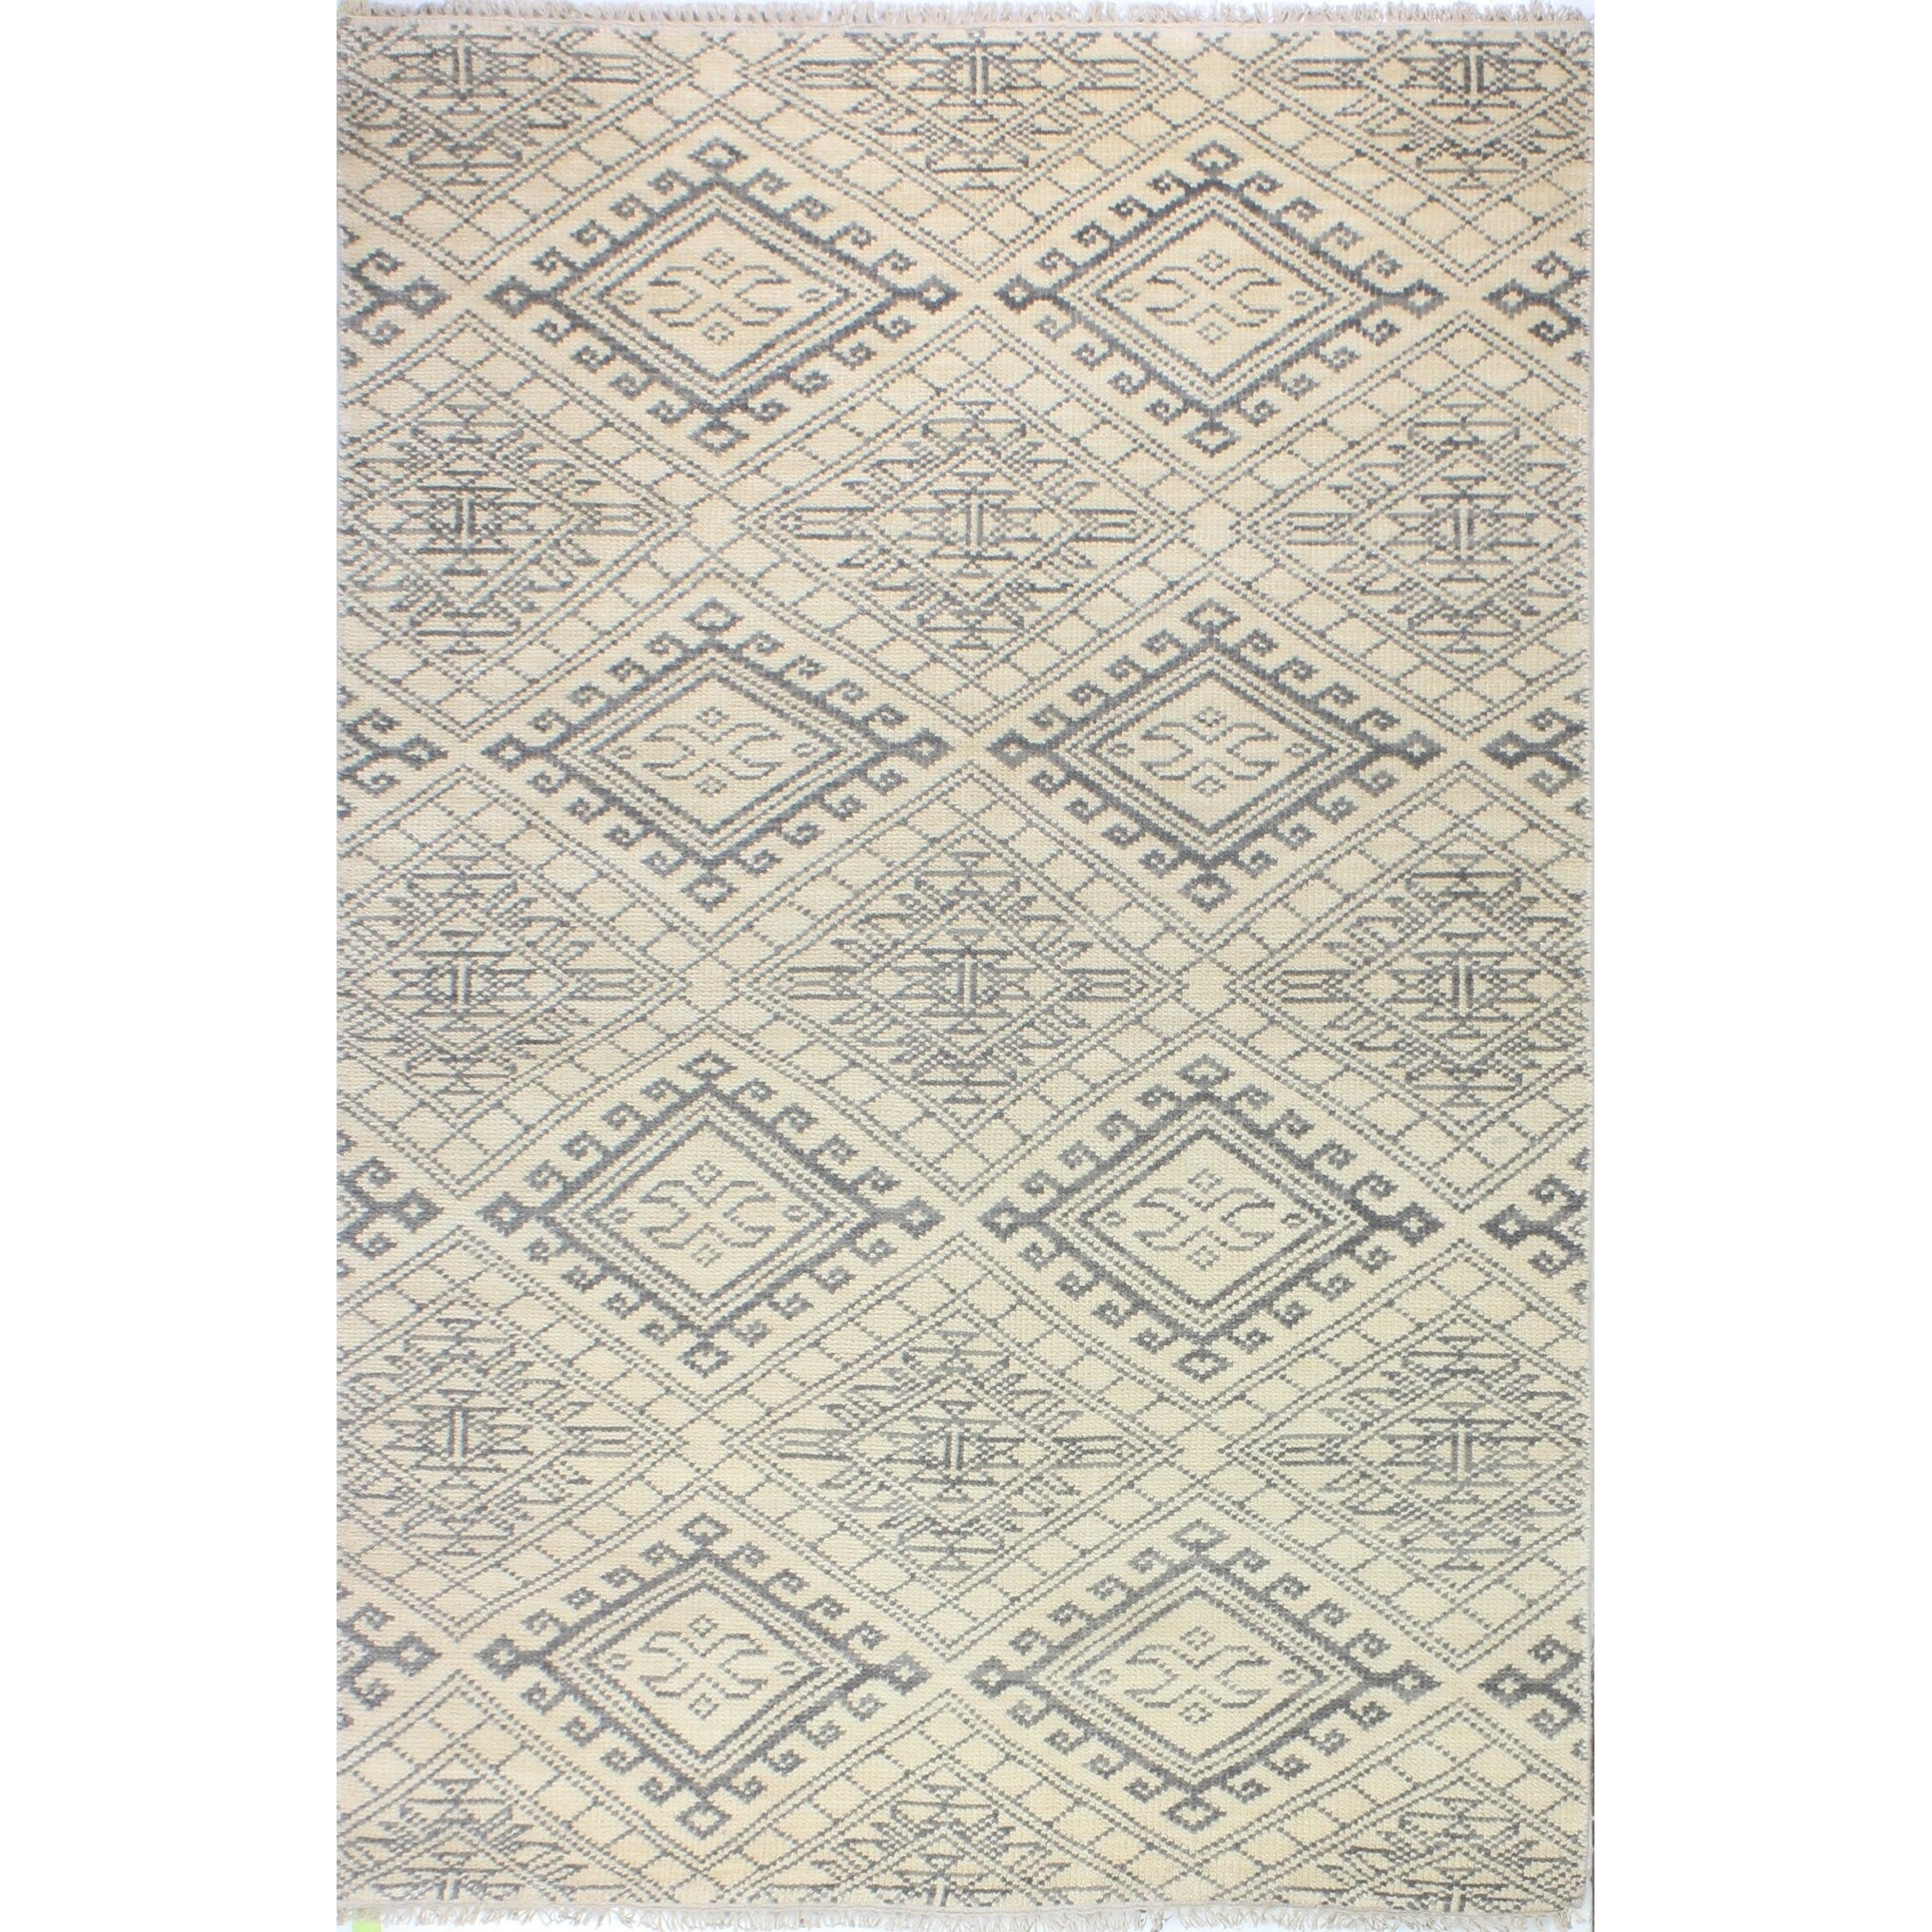 Argos Area Rug 7 6 X 9 On Free Shipping Today Com 19618532